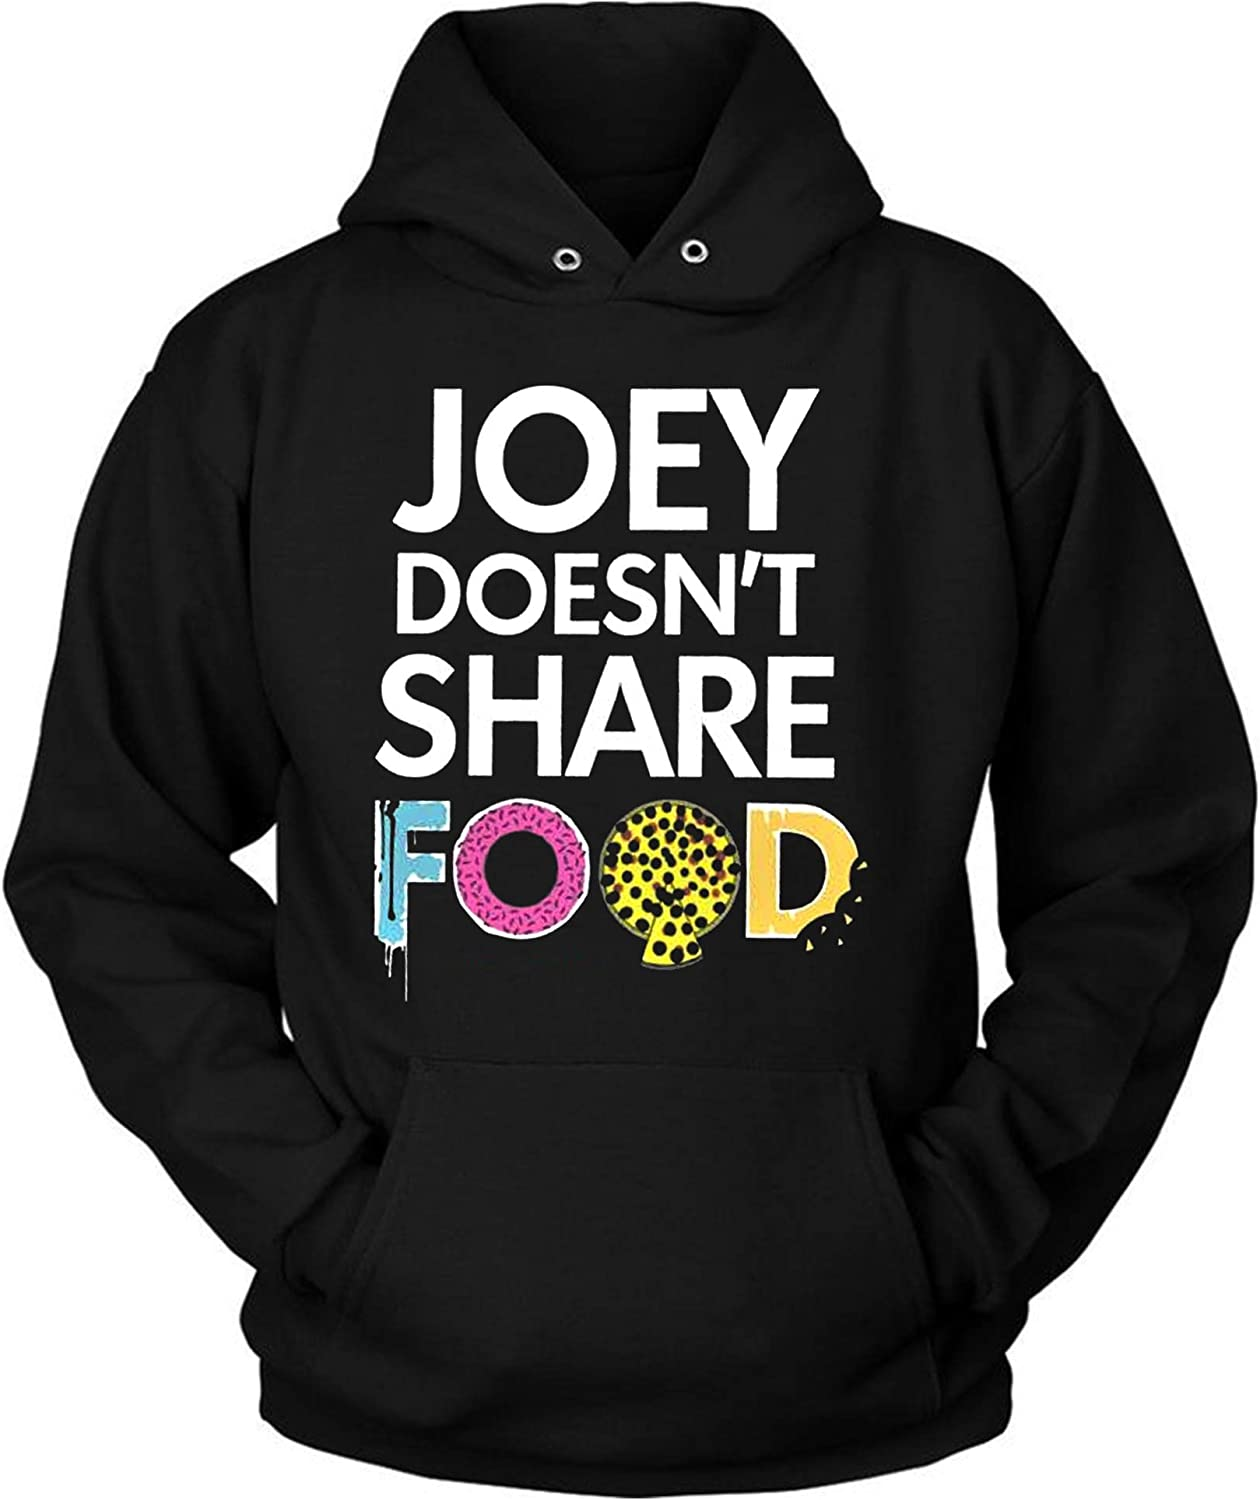 Friends Tv Show Joey Doesn't Share Food Classic Hoodie Funny Friends Movie Tee Gift for Men Women, Friends Tv Show Joey Doesn't Share Food Classic T Shirt, Sweatshirt, Long Sleeve, Tank top